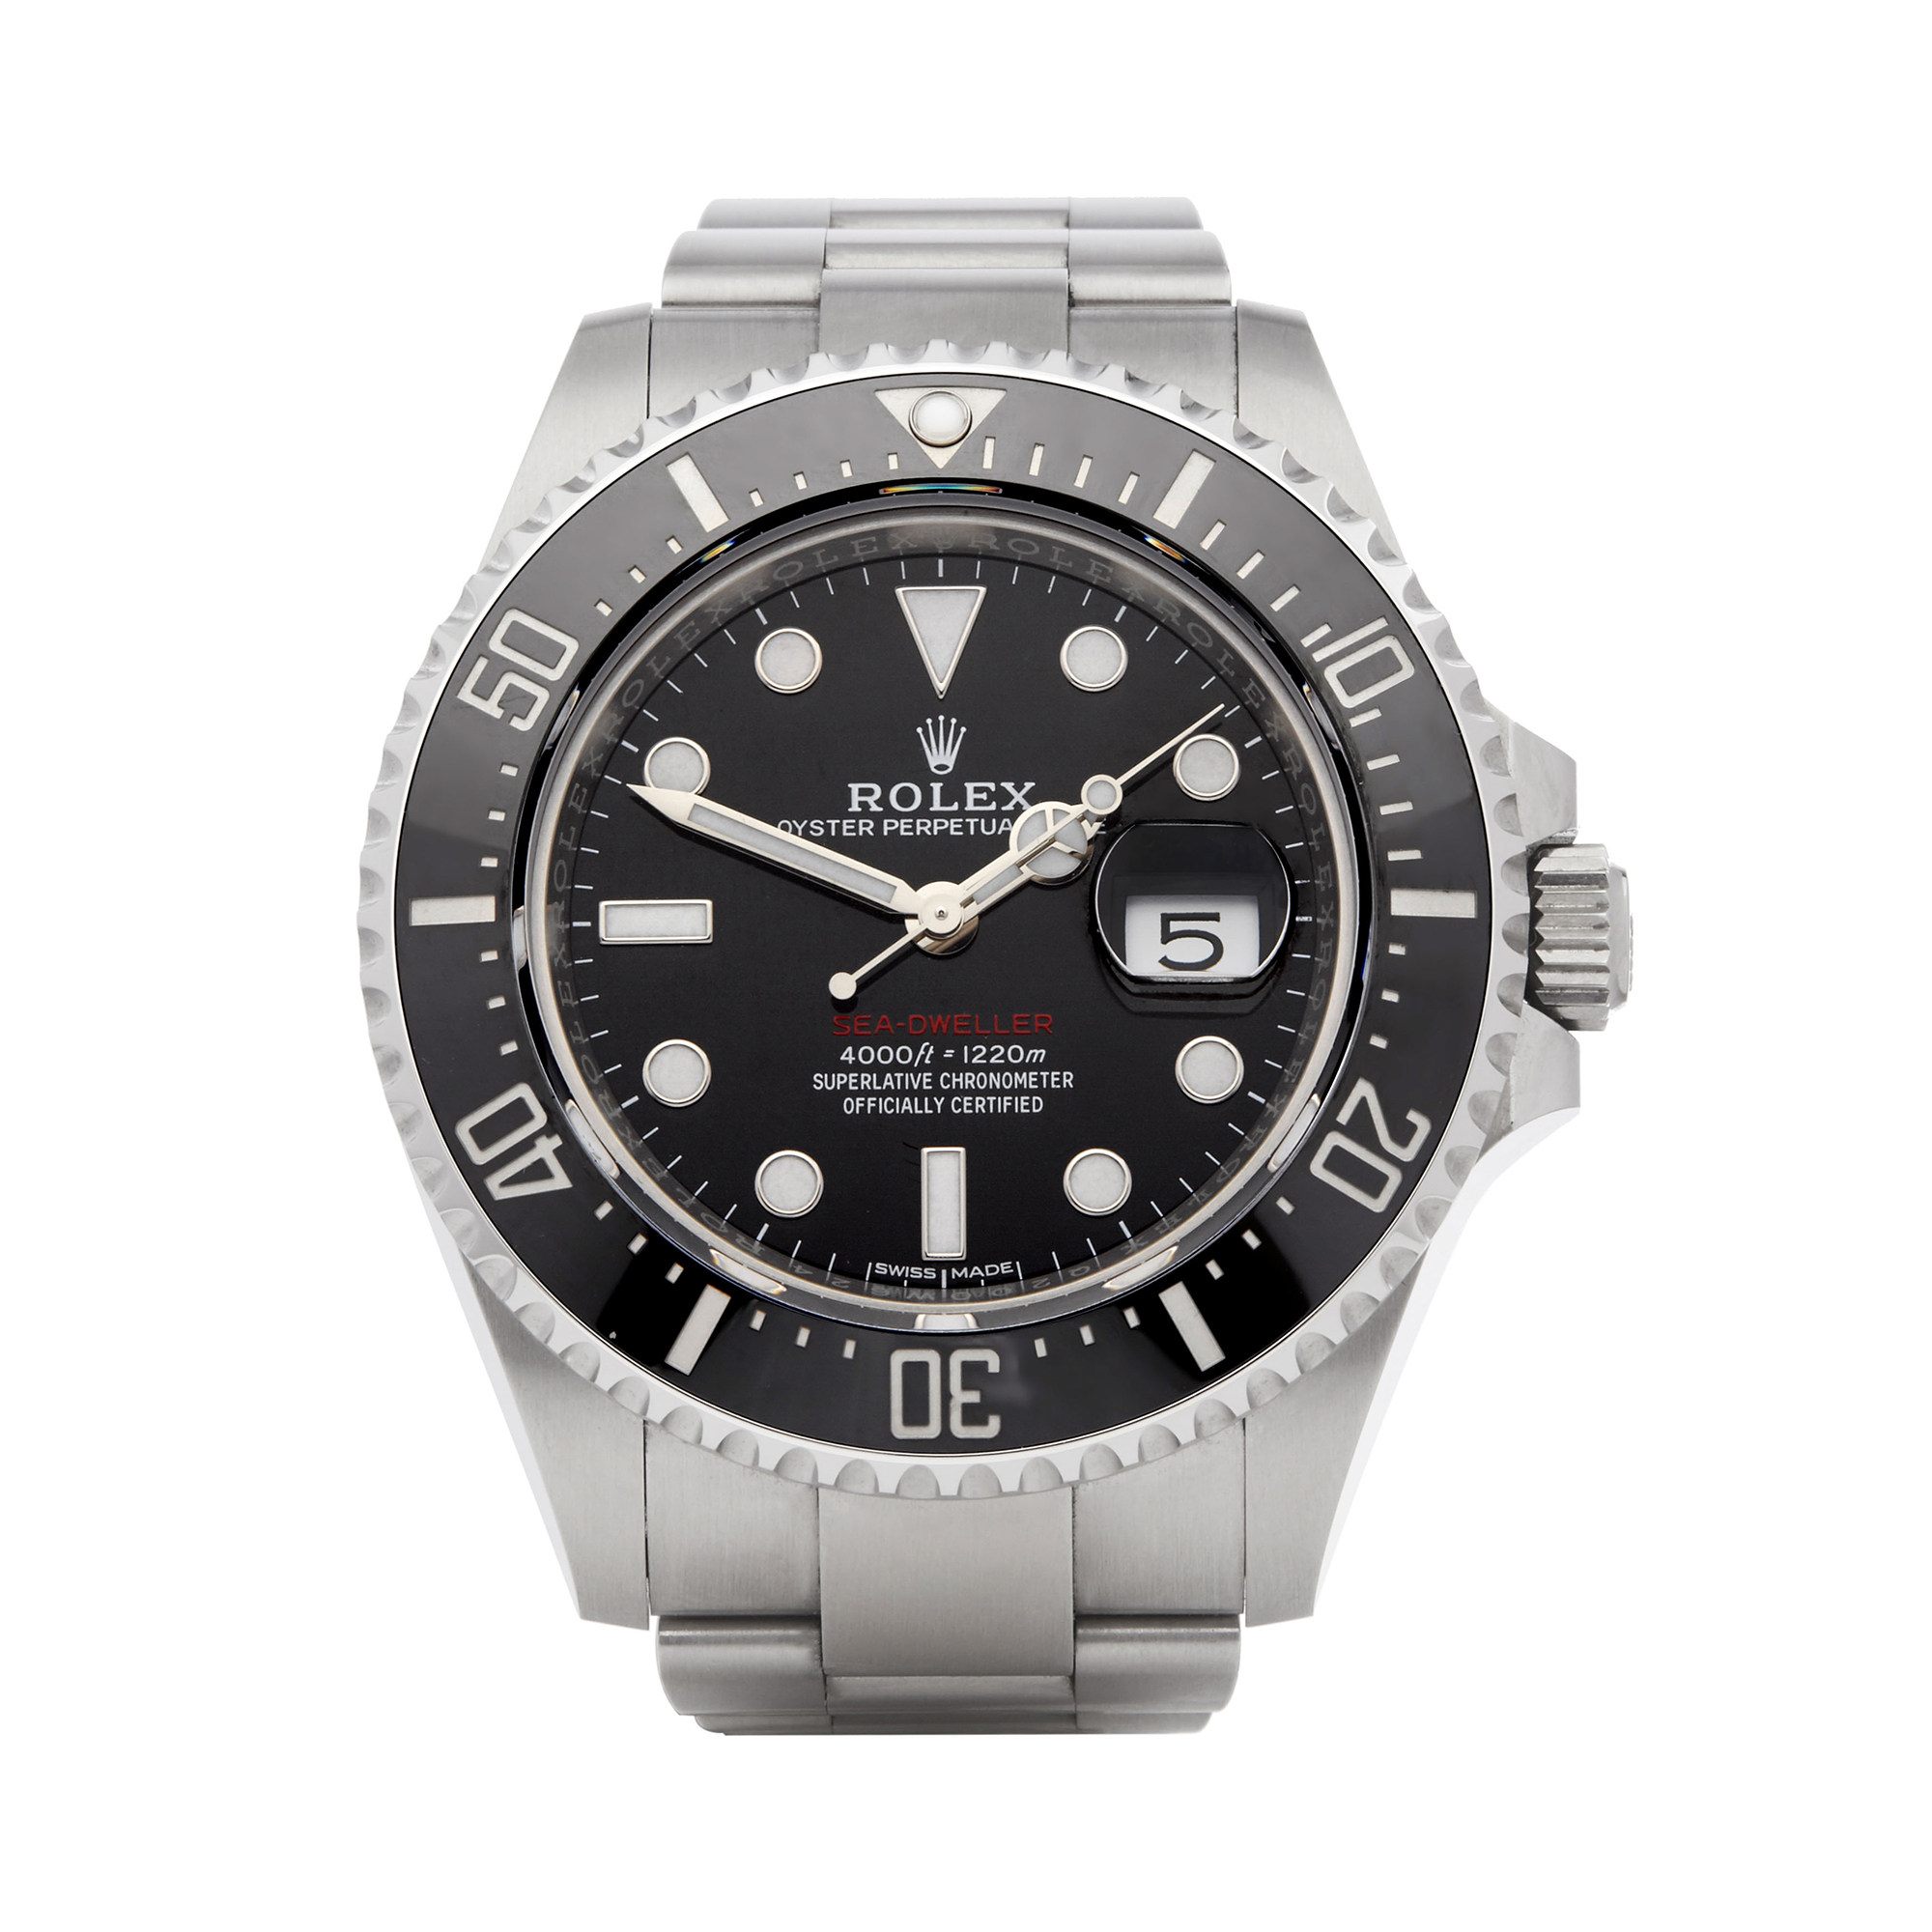 Details About Rolex 50th Anniversary Red Writing Sea Dweller Watch 126600 W6351